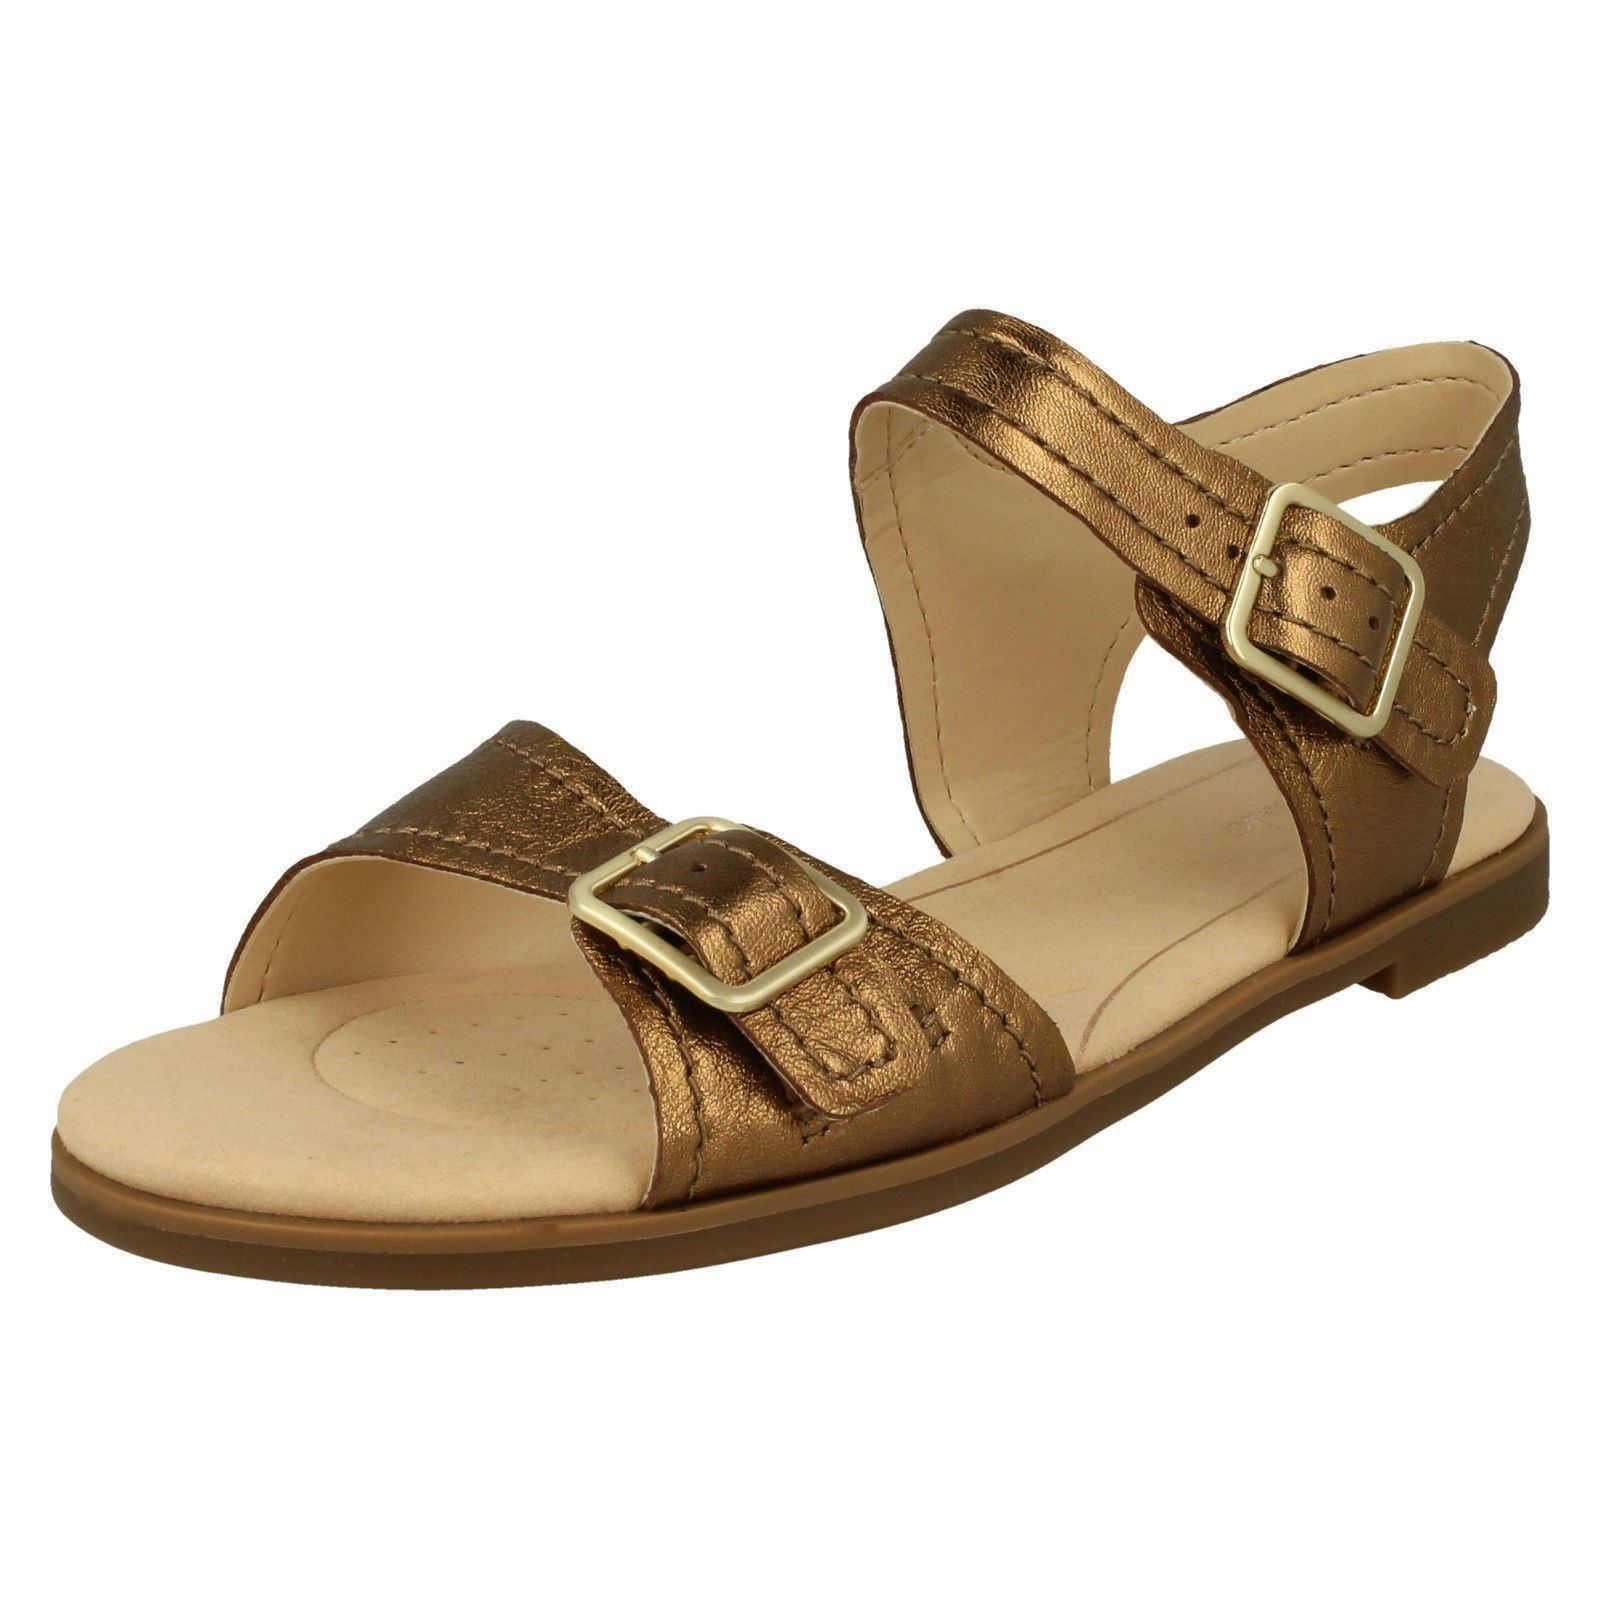 9497f816ca74d7 Clarks Bay Primrose - Bronze Metallic (leather) Womens Sandals 6 UK. About  this product. Picture 1 of 10  Picture 2 of 10 ...